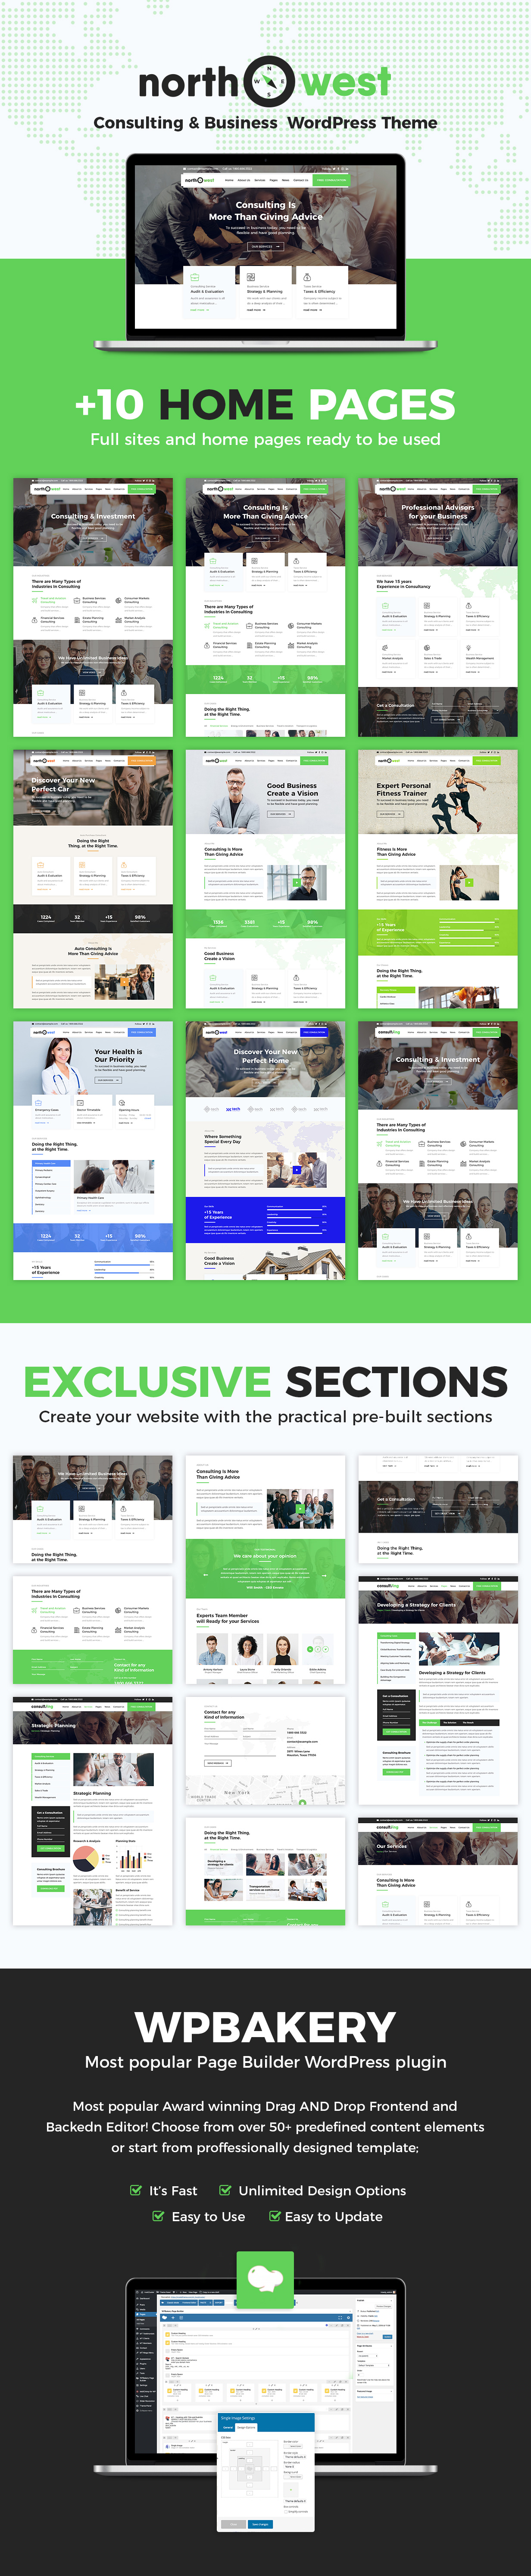 Northwest - Consulting WordPress Theme - 2